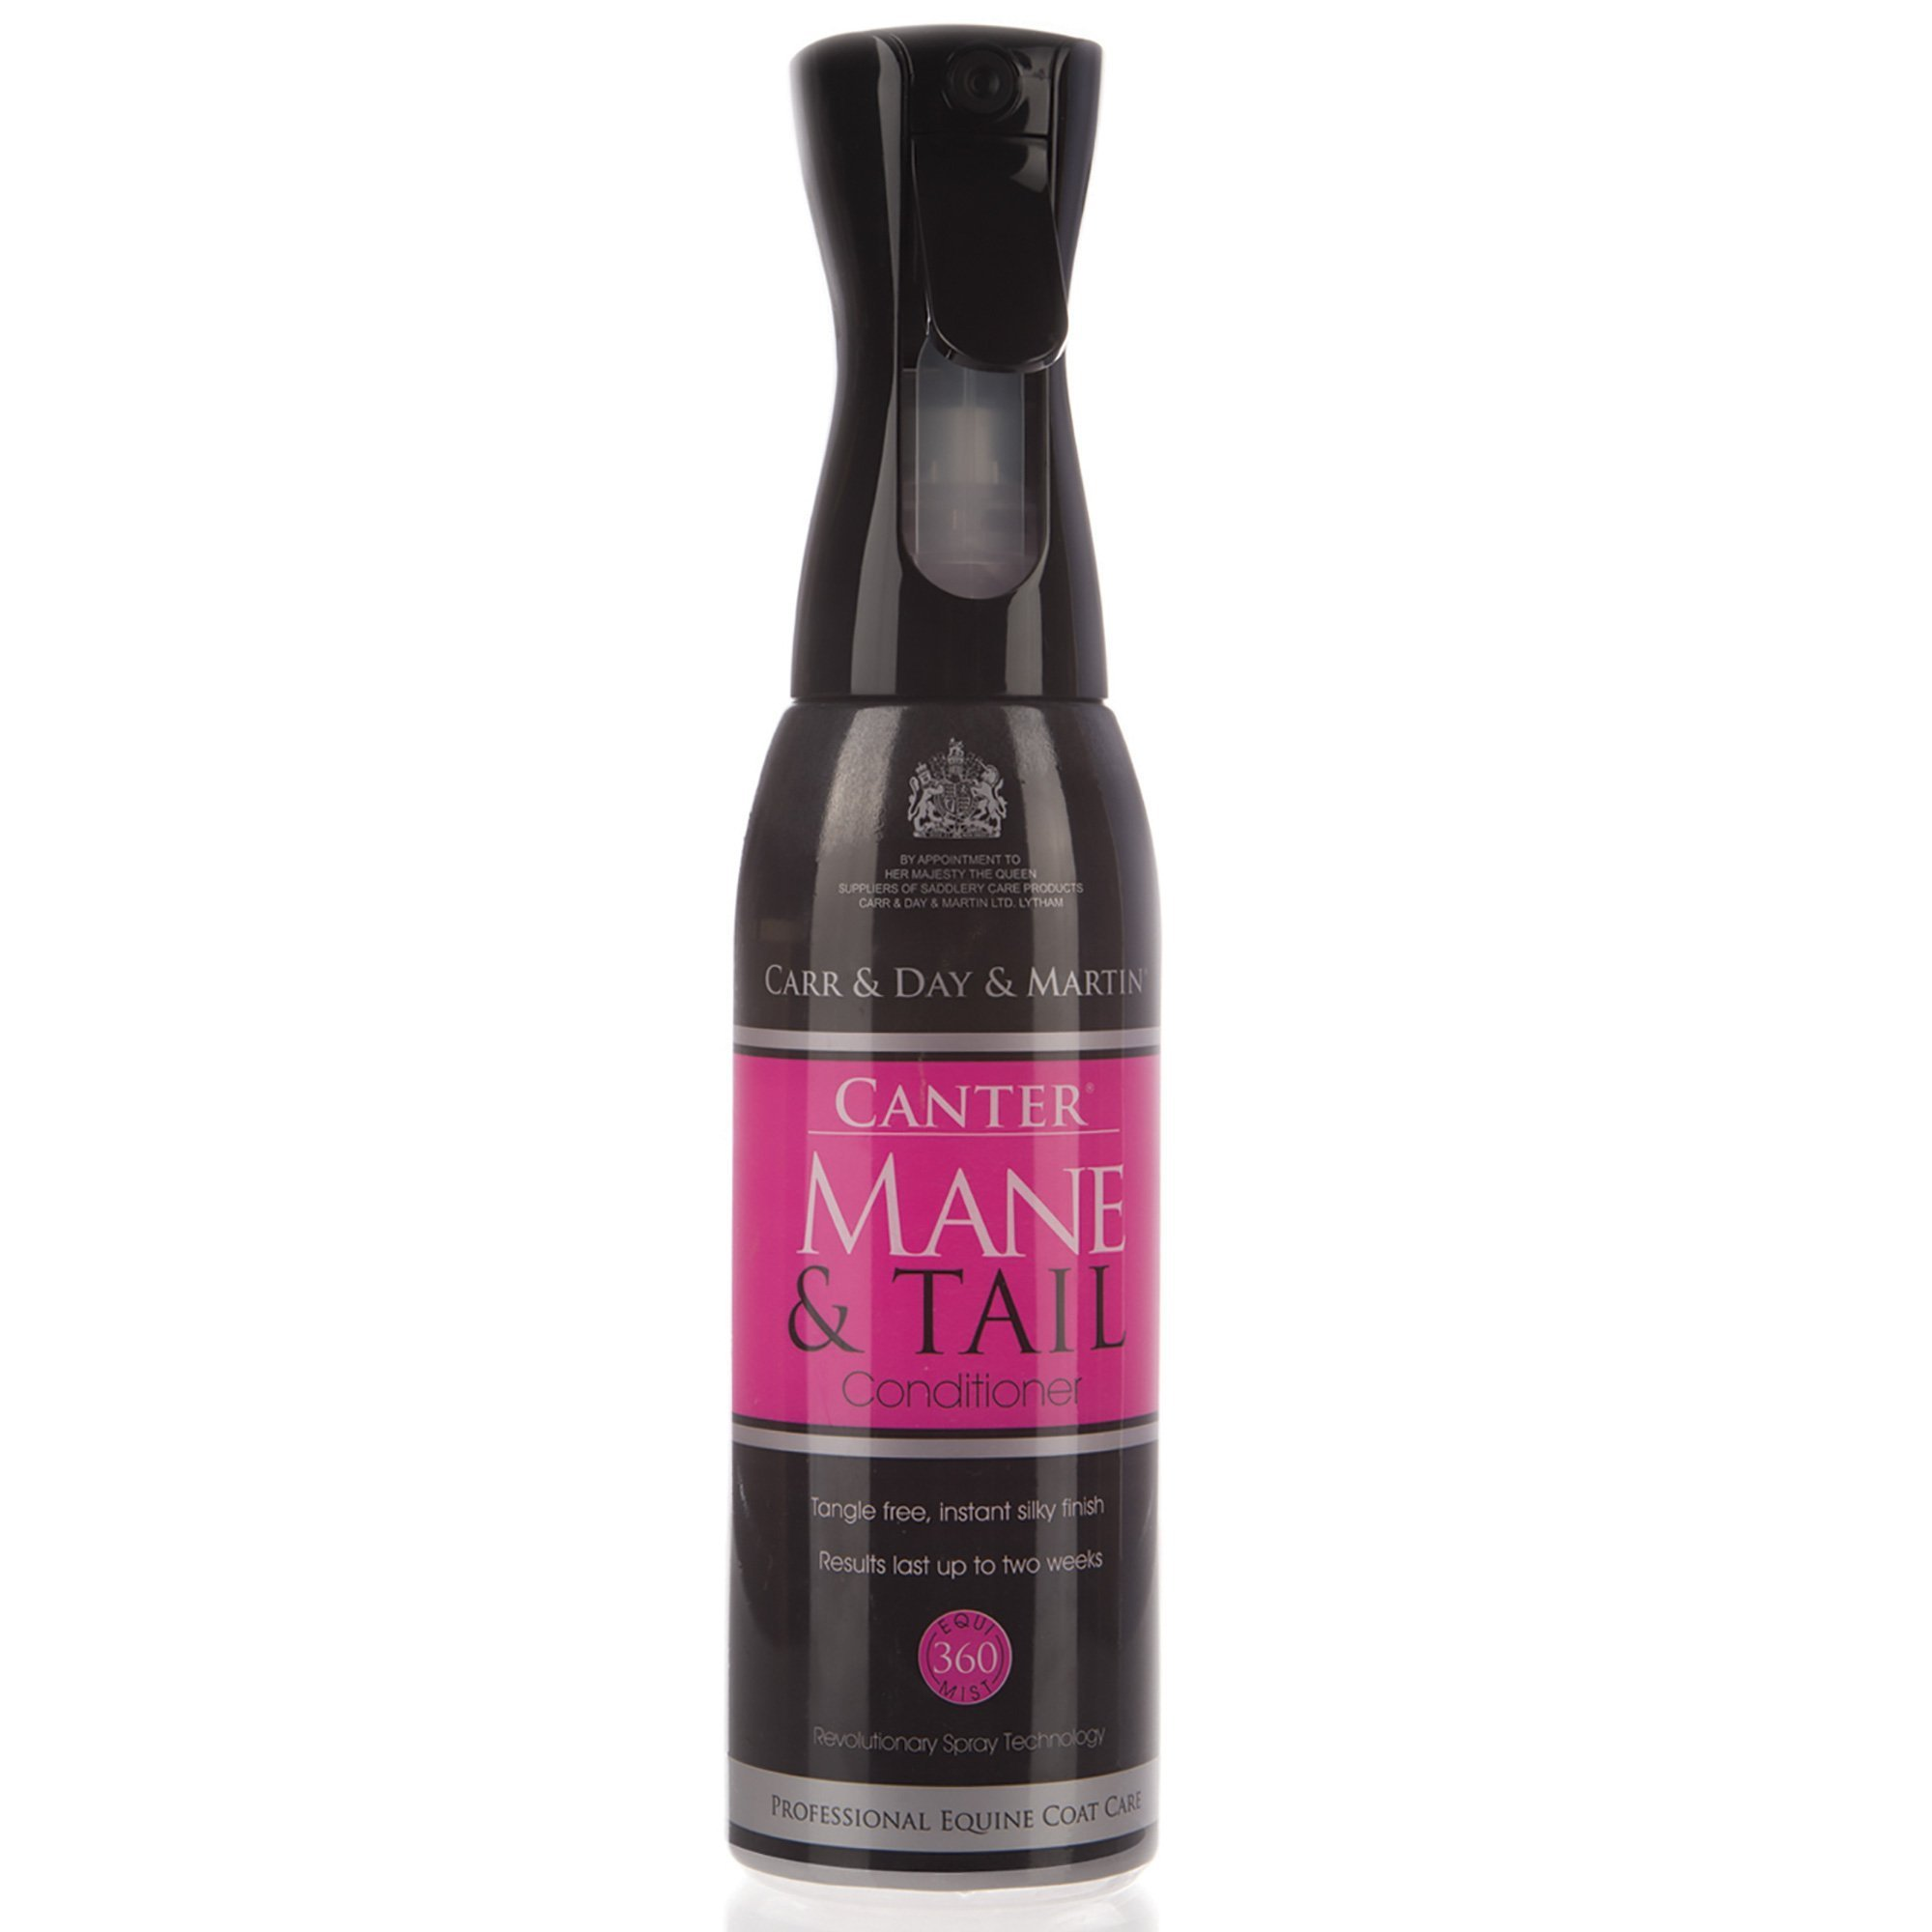 Carr & Day & Martin Canter Mane & Tail Conditioner x 600ml